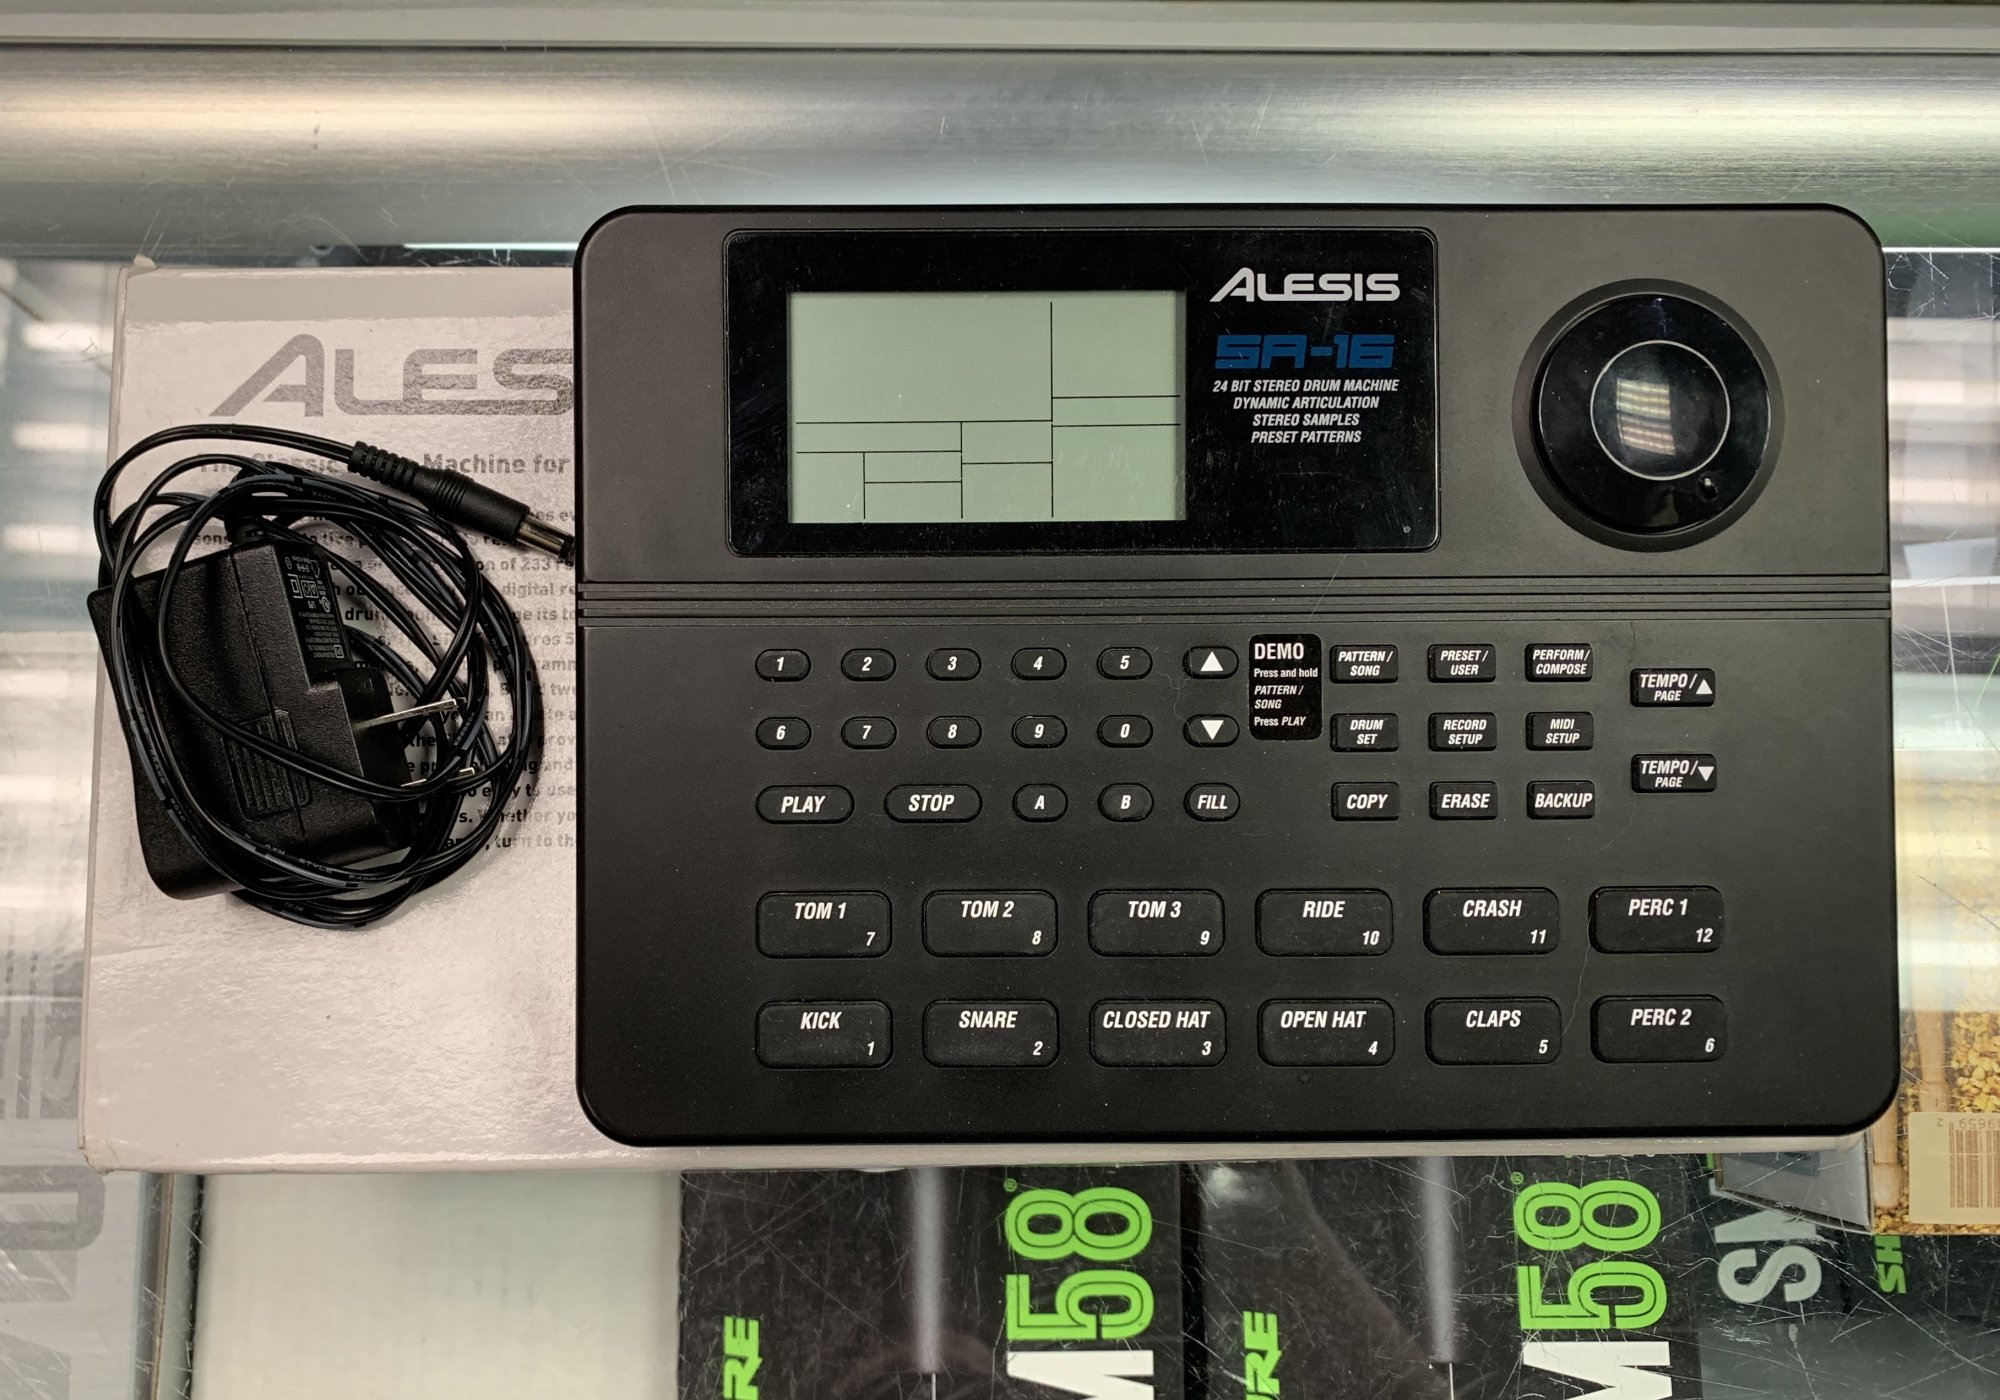 Used Alesis SR-16 Drum Machine